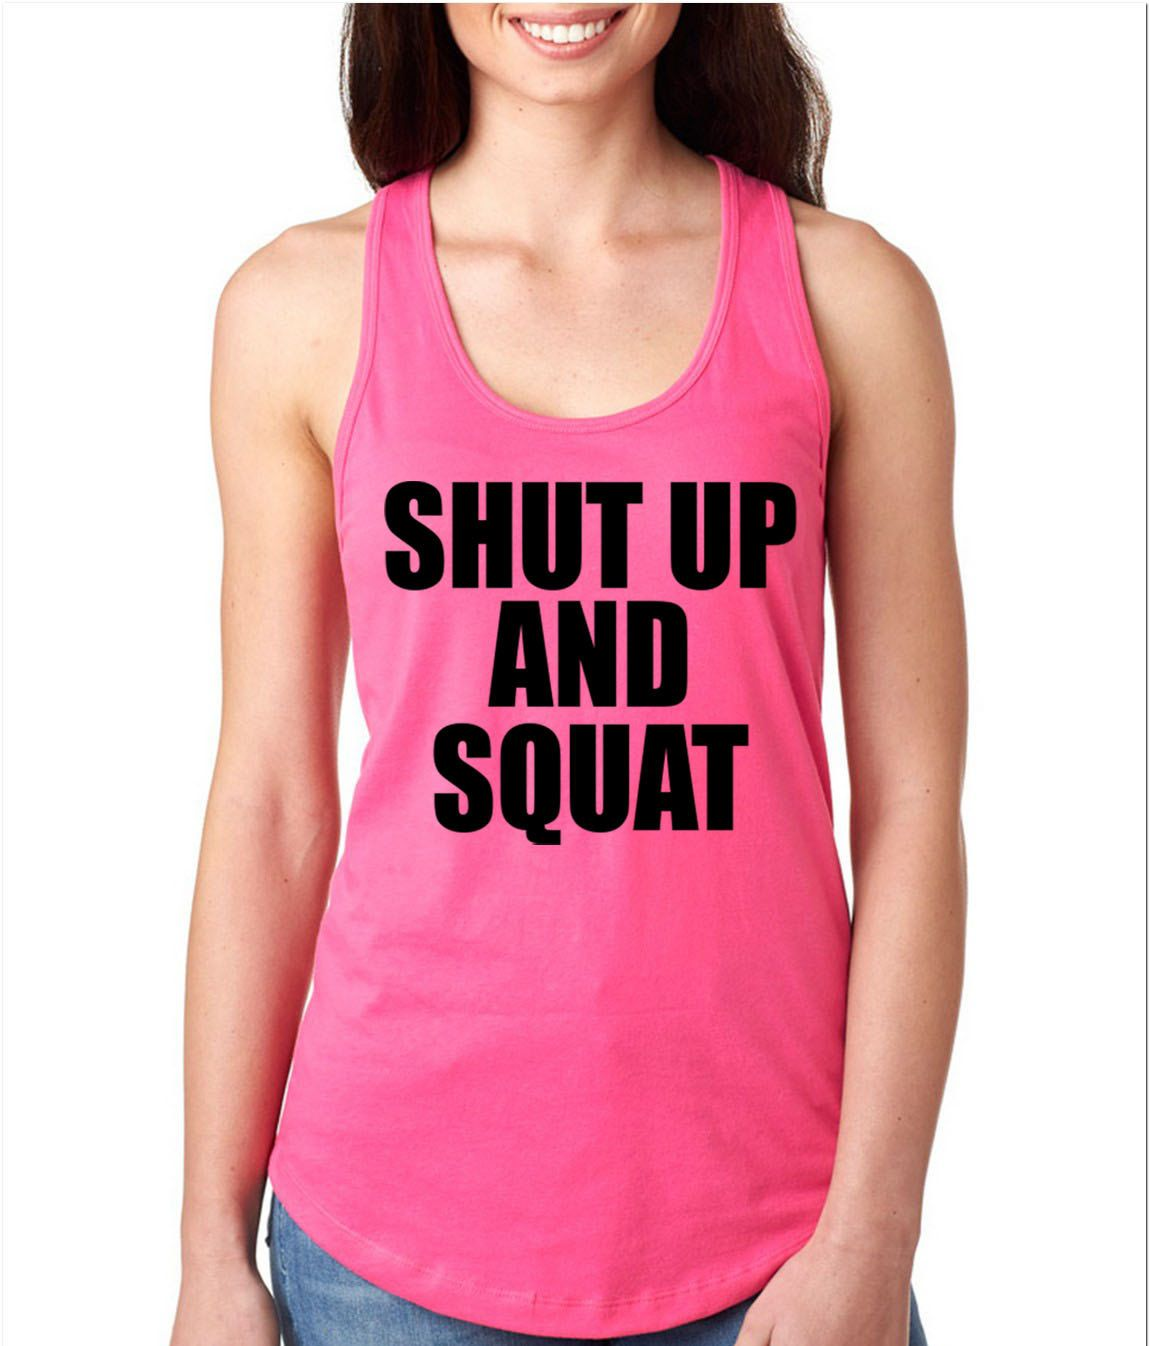 Shut Up And Squat Racerback Gym Tank Workout Tank Gym Tank by WildWindApparel on Etsy